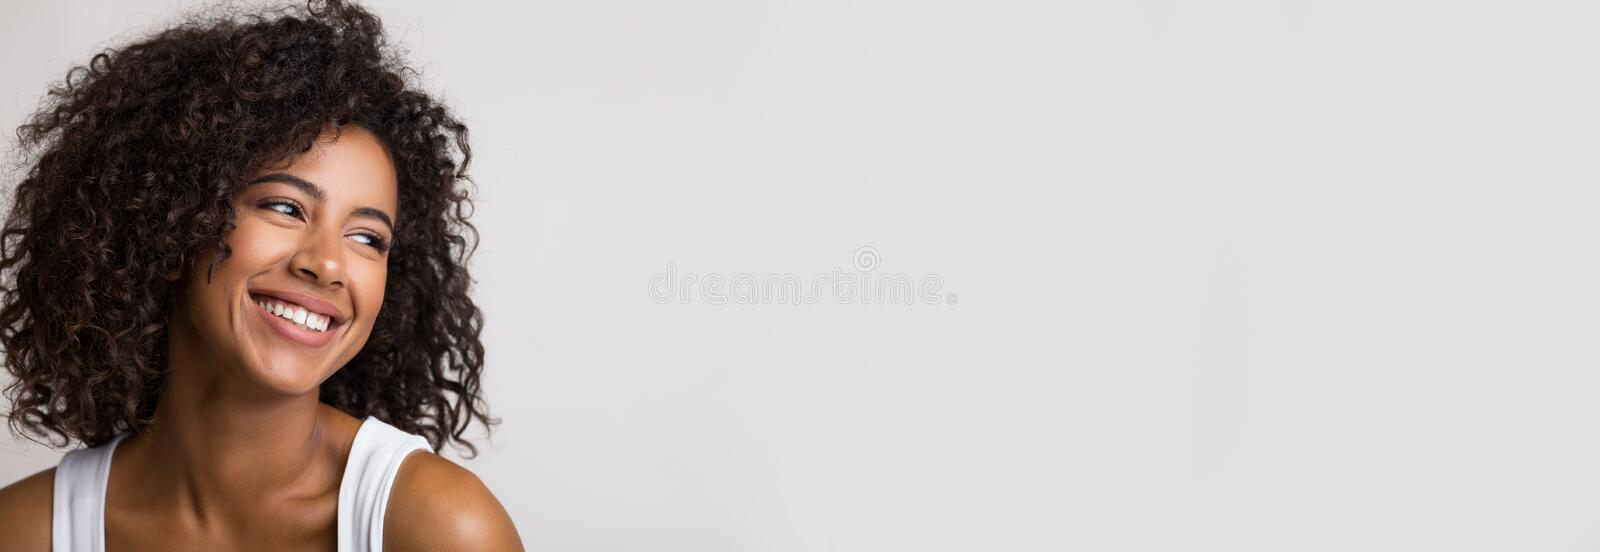 Beauty portrait of happy african american woman royalty free stock photos